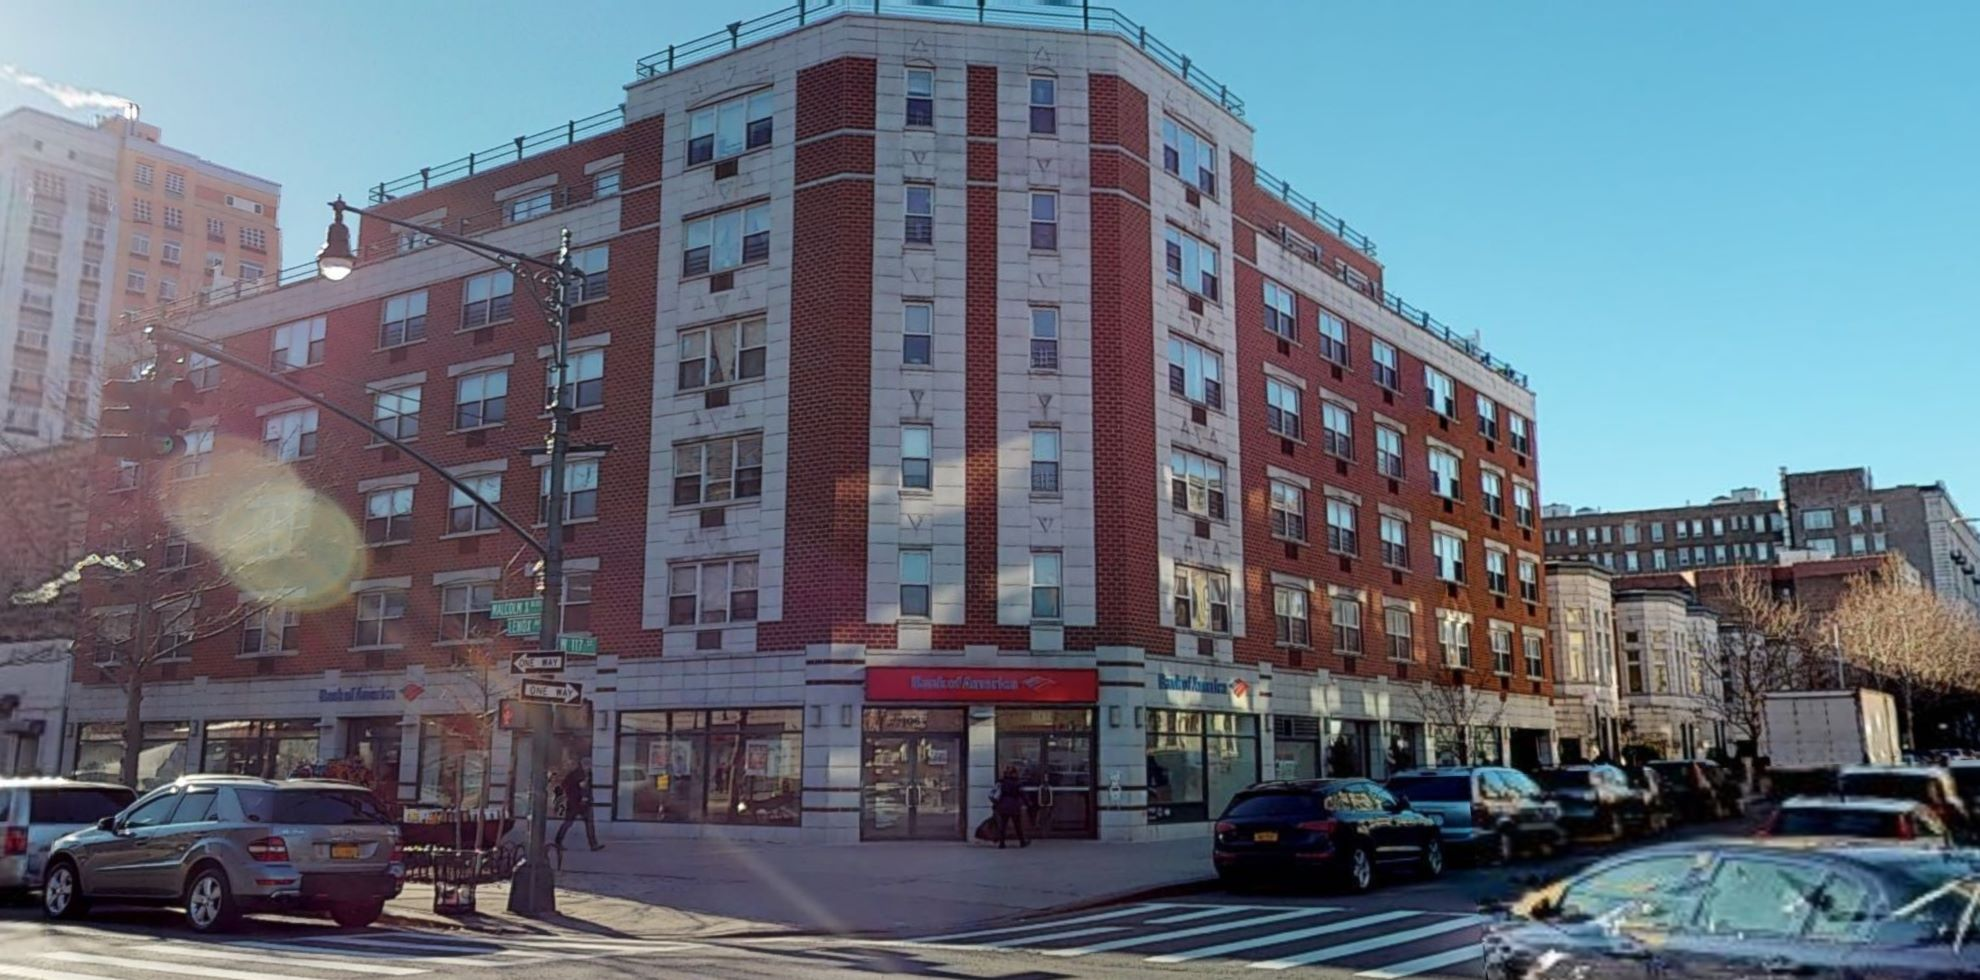 Bank of America financial center with walk-up ATM | 106 W 117th St, New York, NY 10026